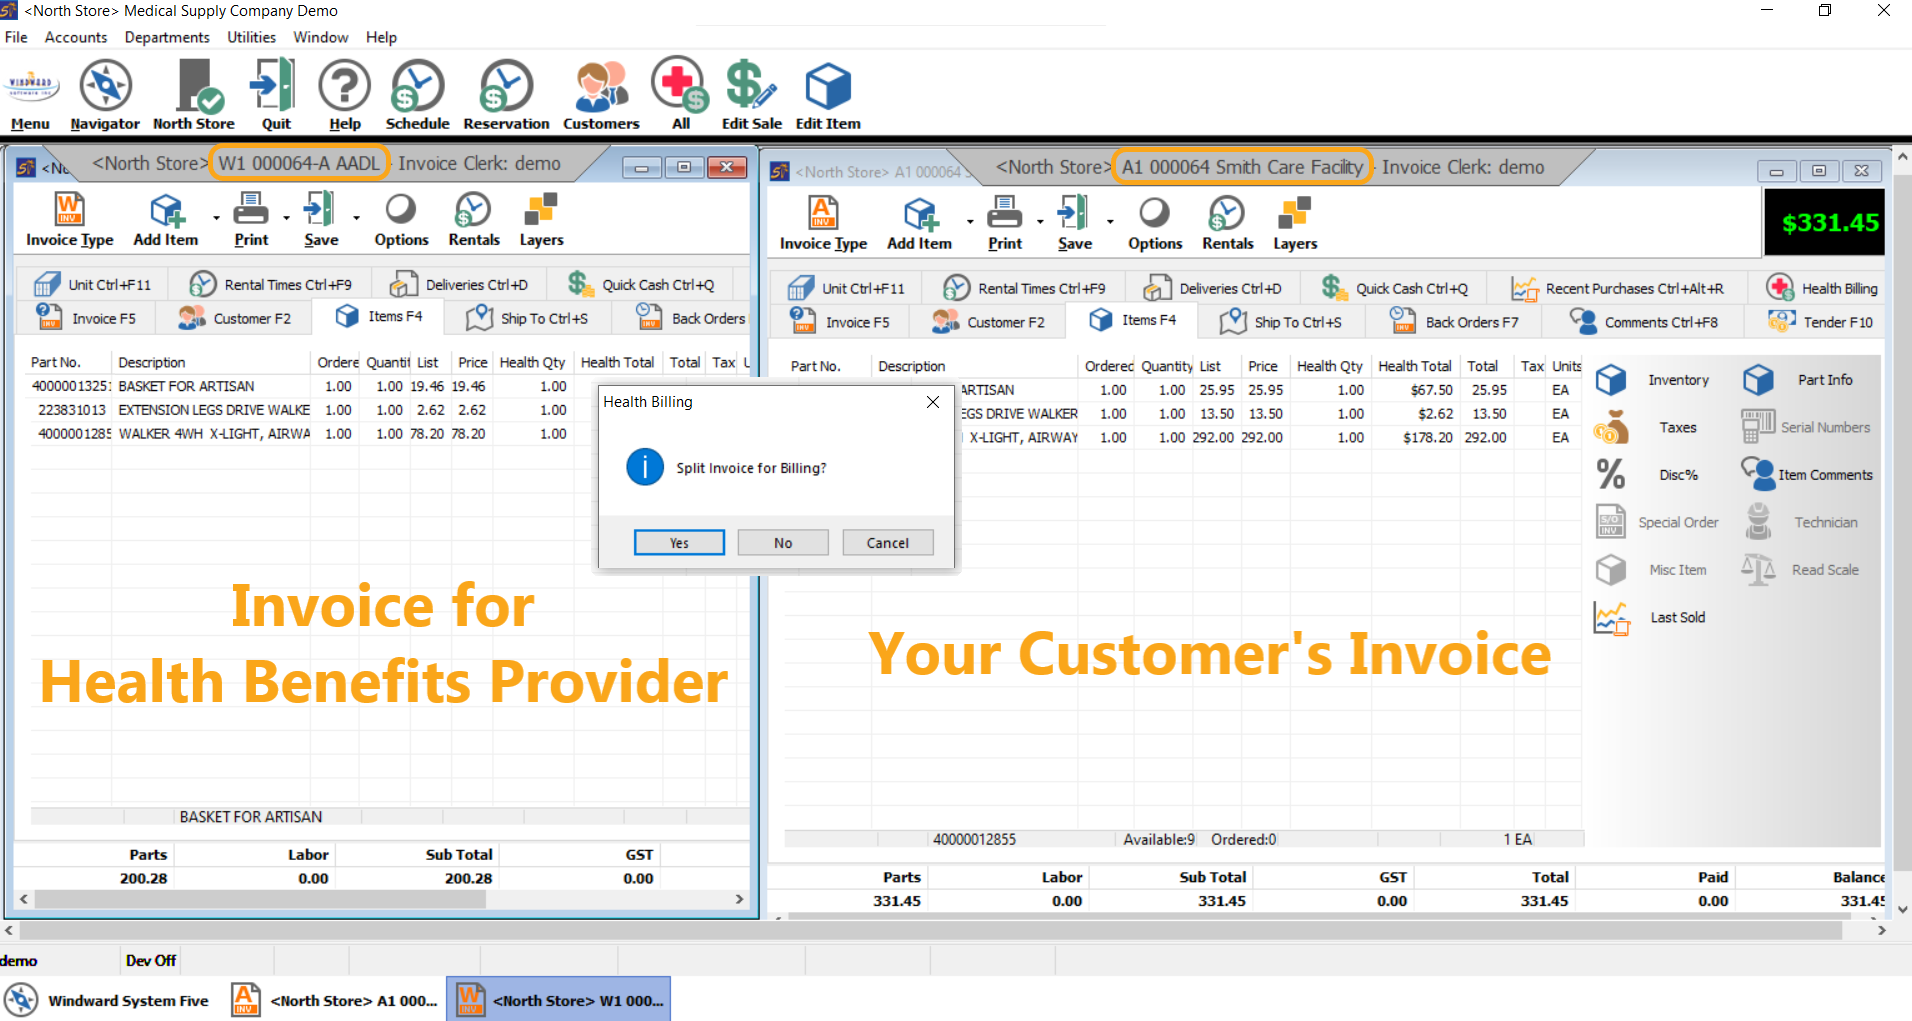 Split billing invoices for provider and customer